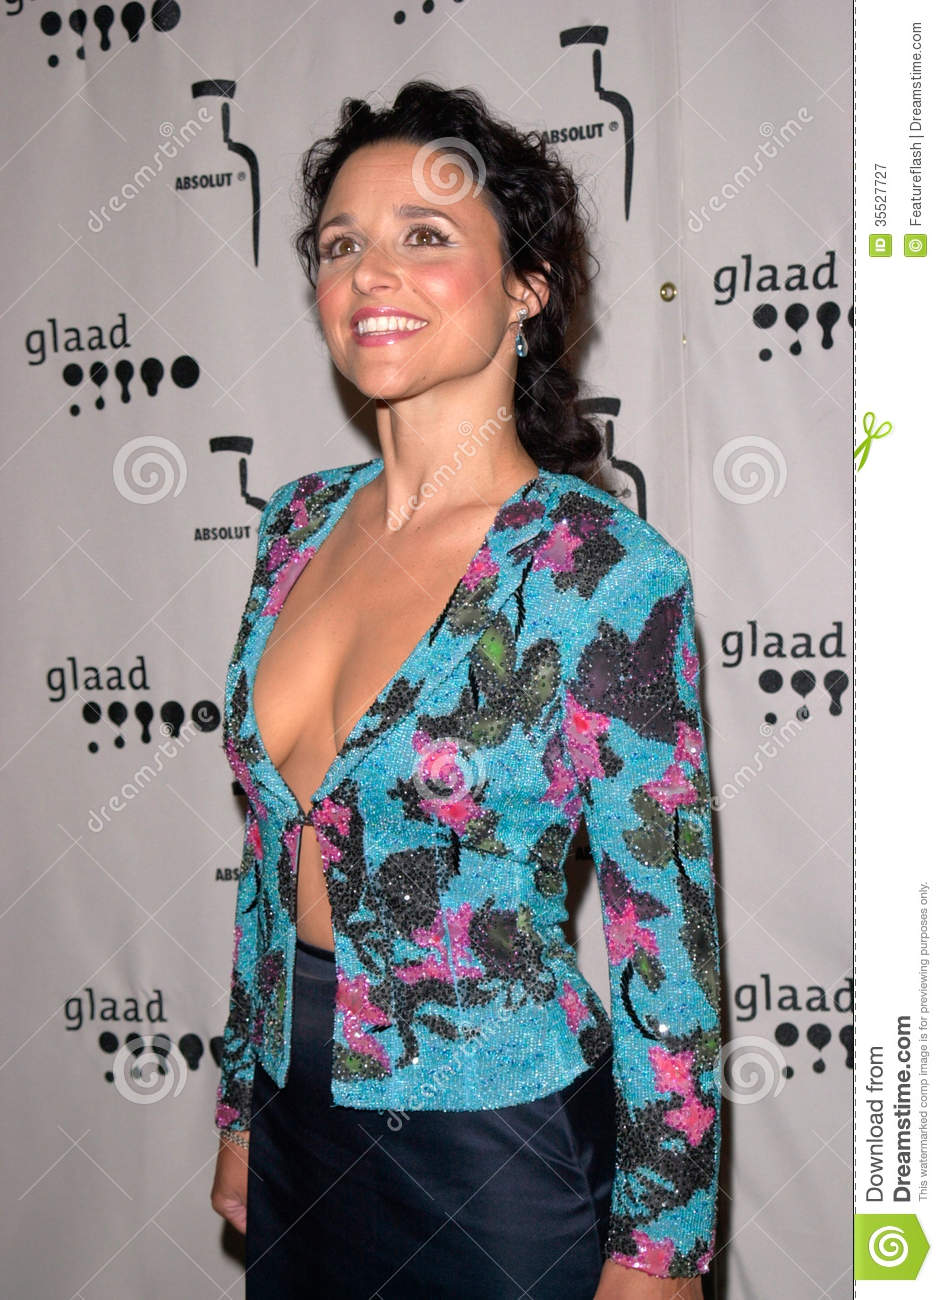 JULIA LOUIS-DREYFUS at the Gay & Lesbian Alliance Against Defamation ...: https://www.dreamstime.com/royalty-free-stock-photography-julia...